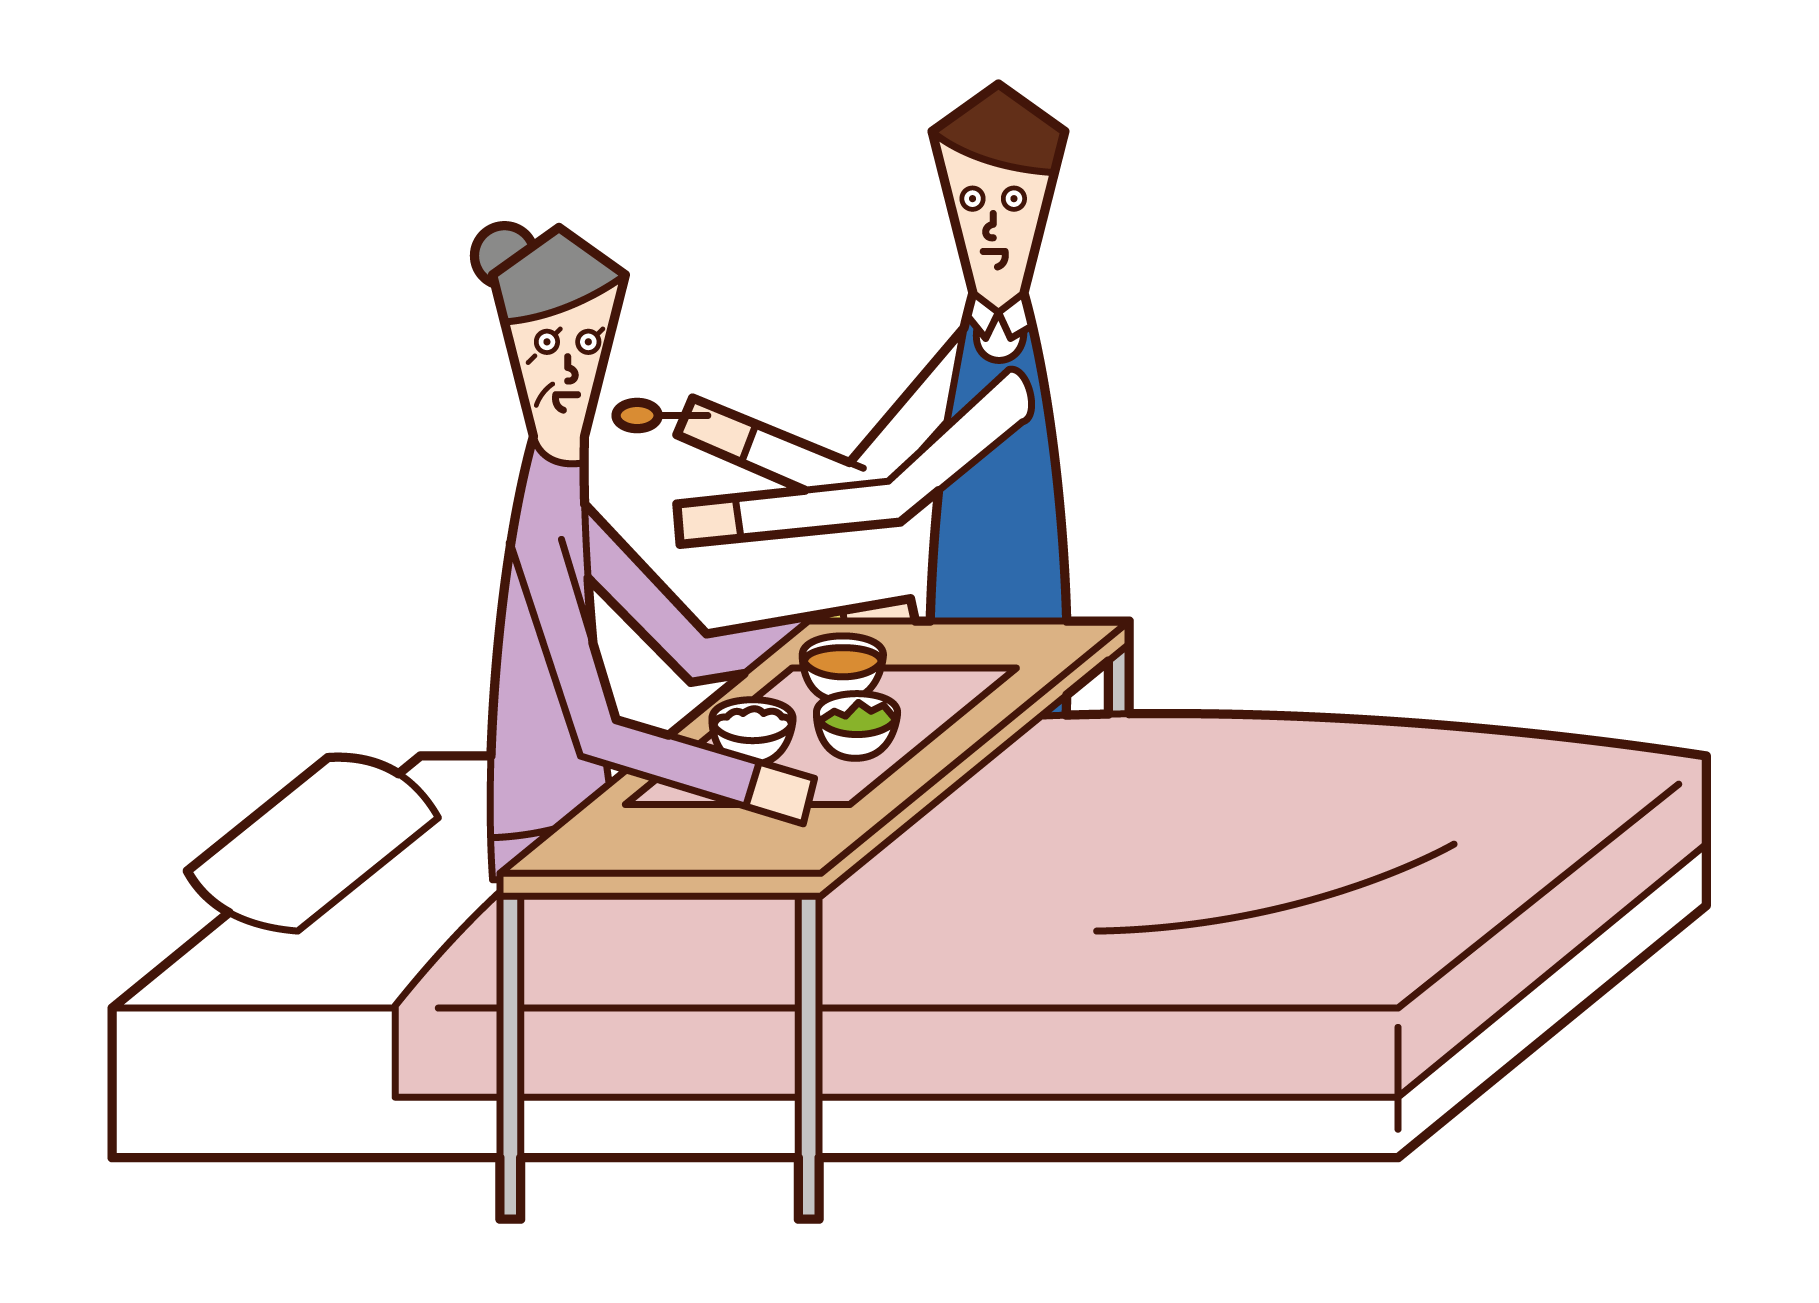 Illustration of a care worker (man) who assists with meals